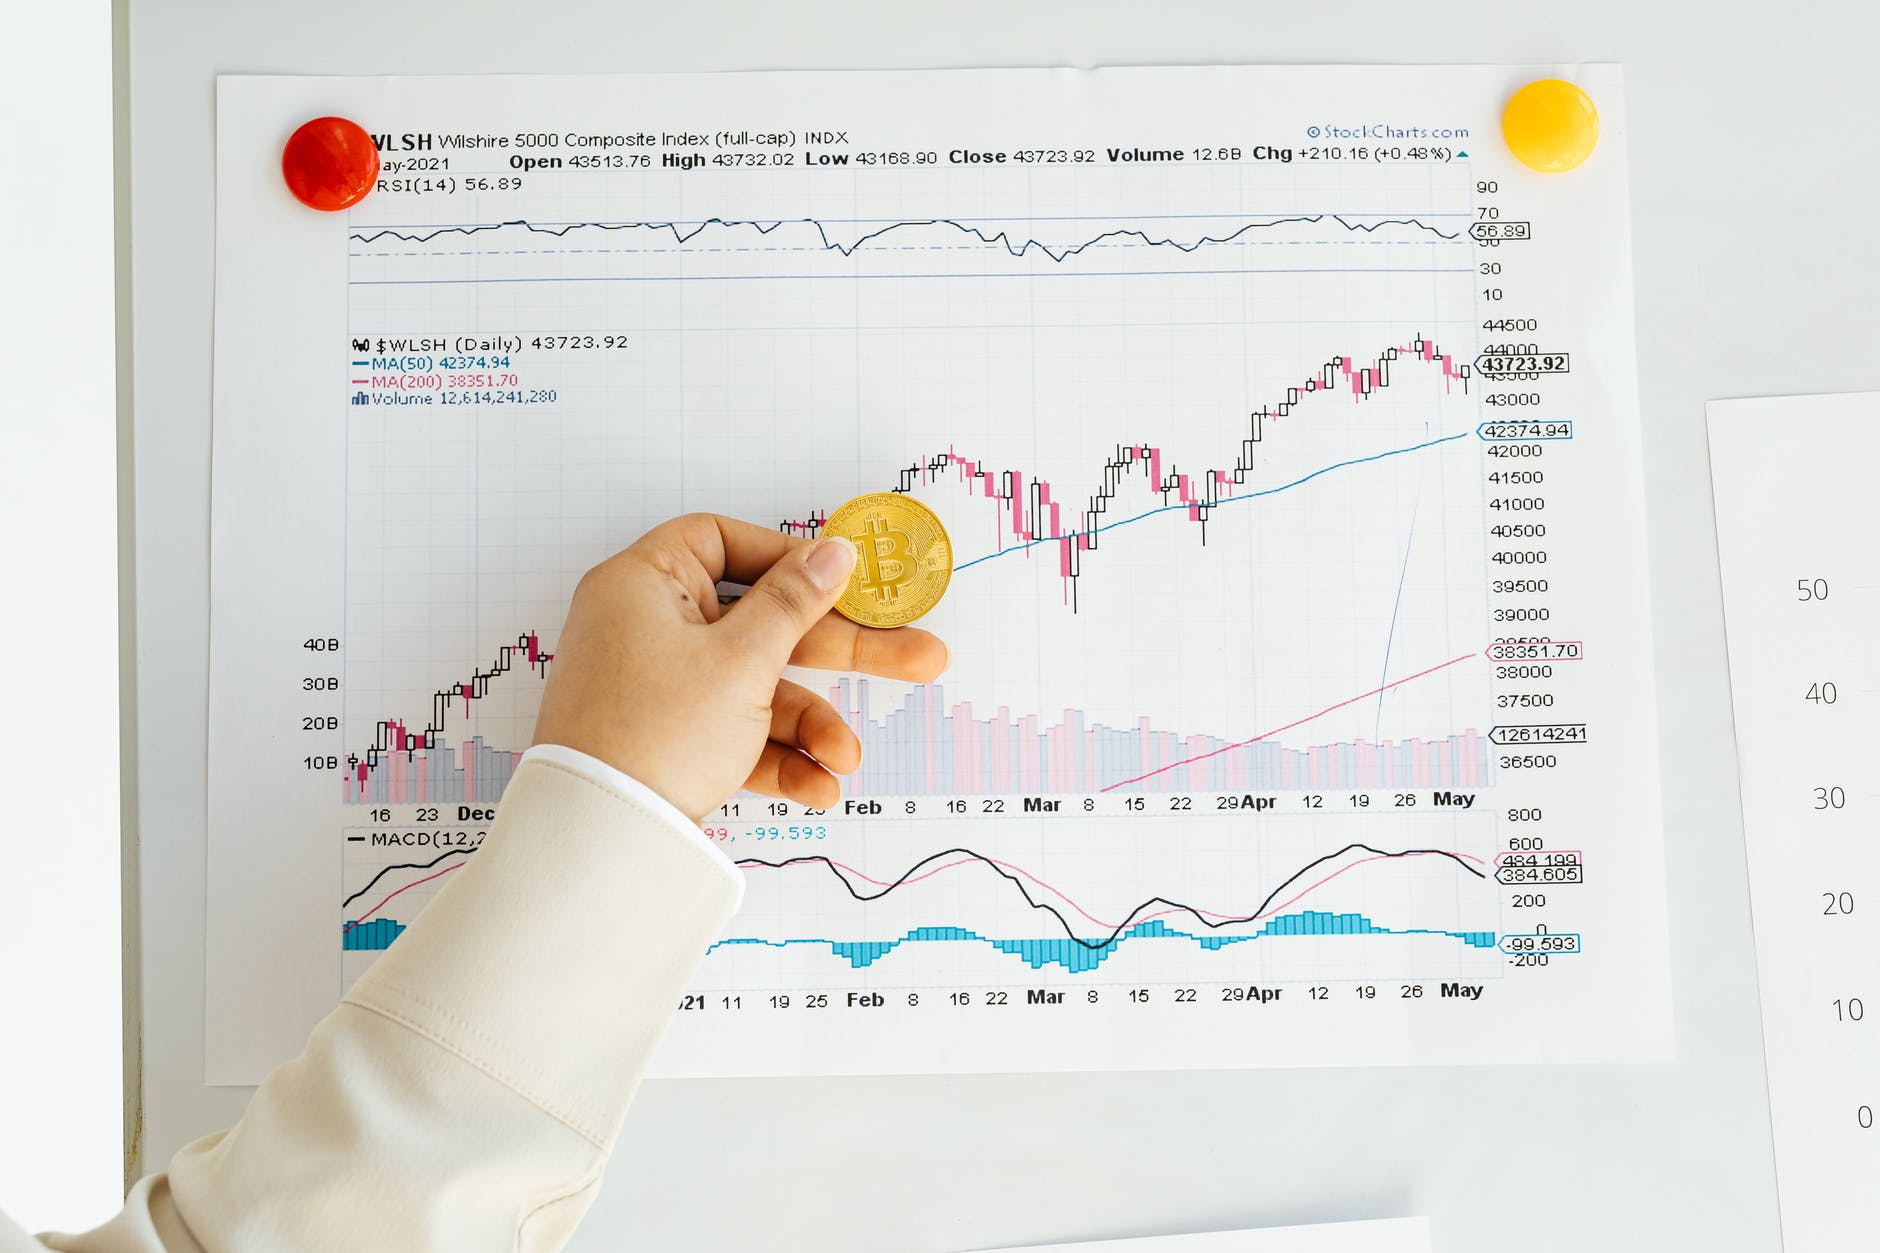 person holding a bitcoin with stock chart report on wall